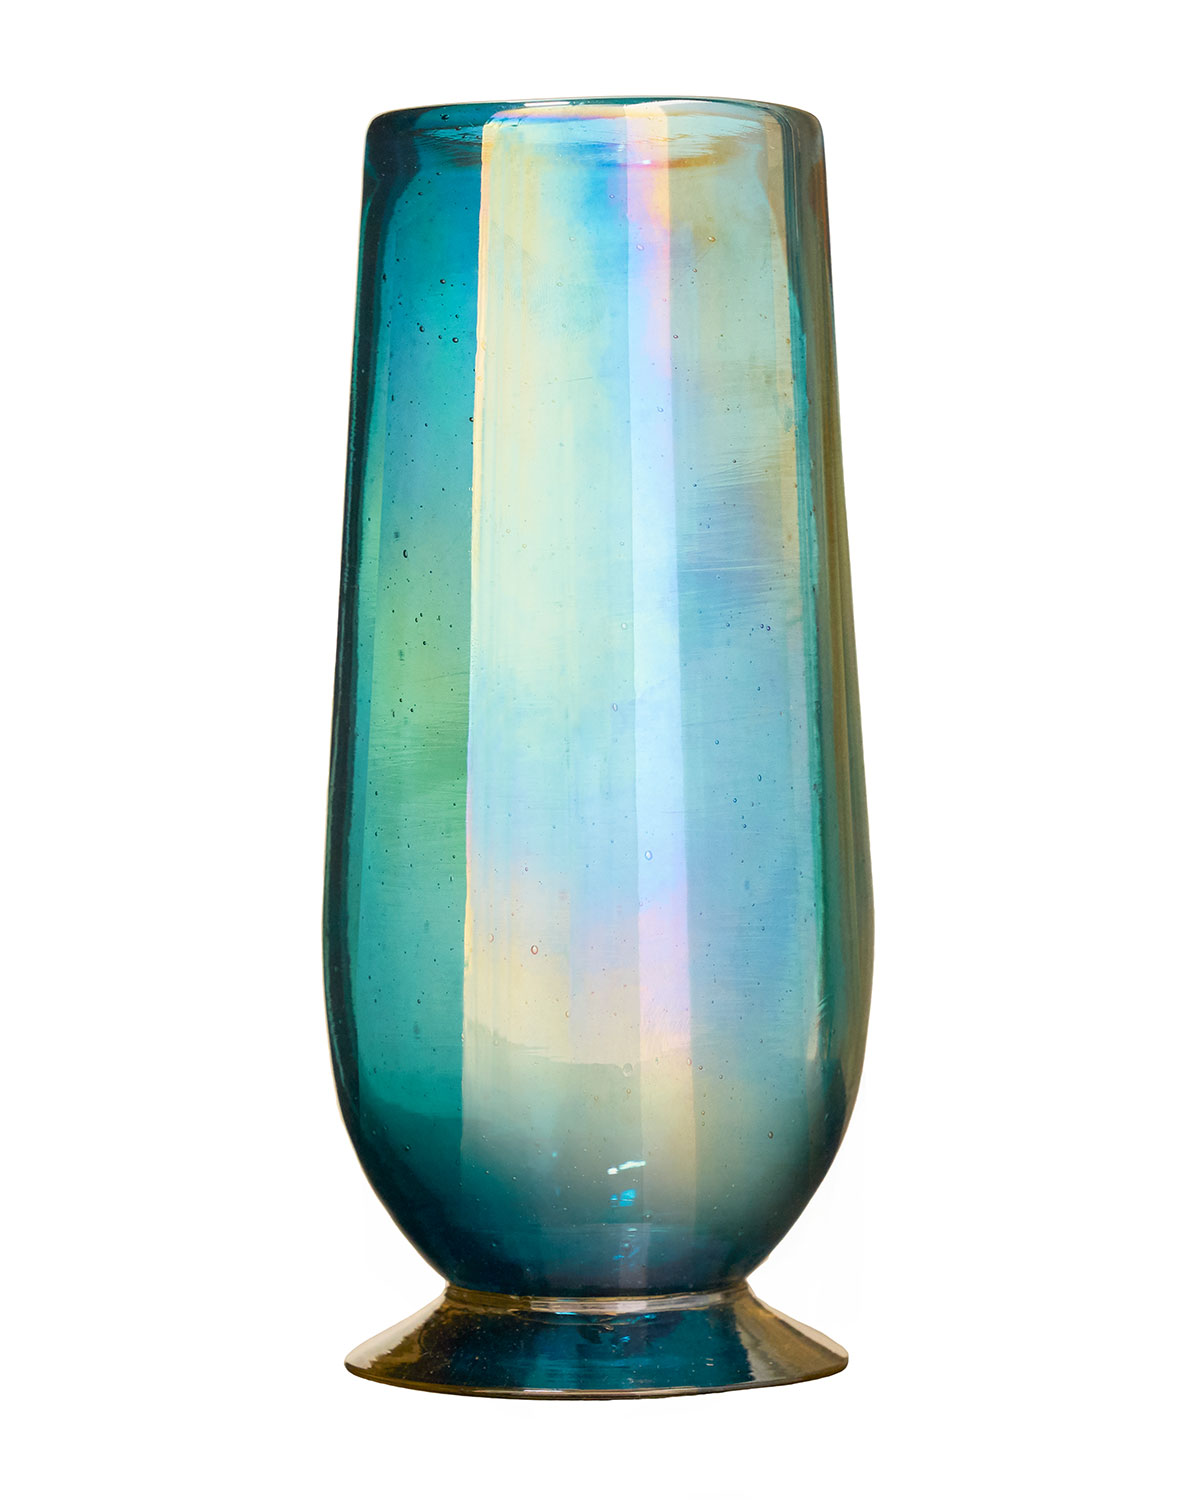 Tio Opalescent Drinking Glass - Turquoise